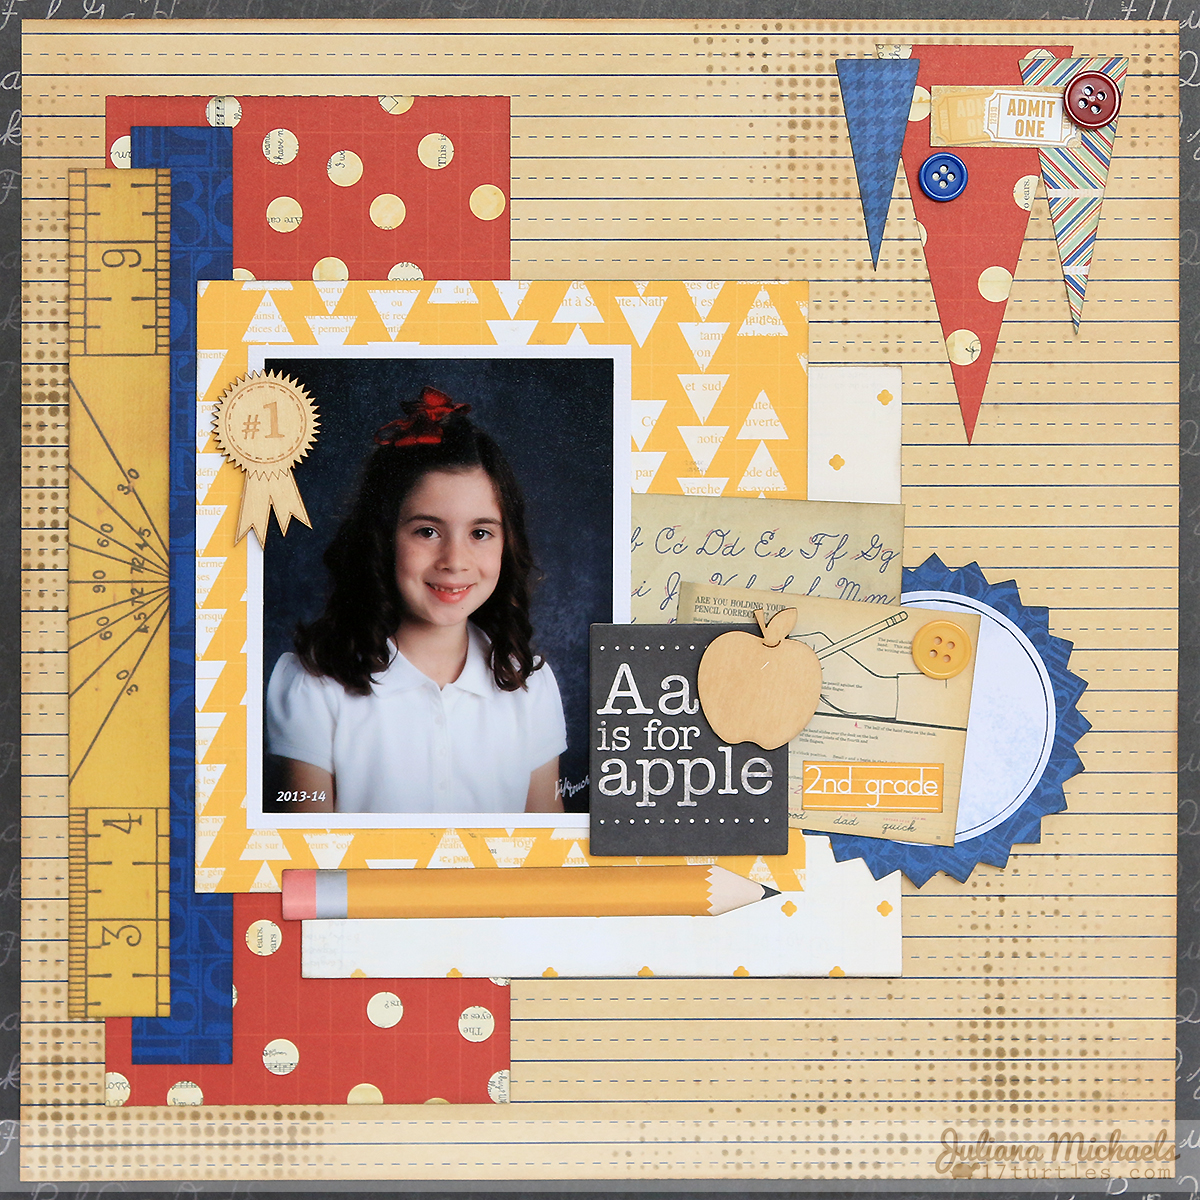 A is for Apple Scrapbook Page Juliana Michaels #bobunny #scrapbookpage #schoolphotos